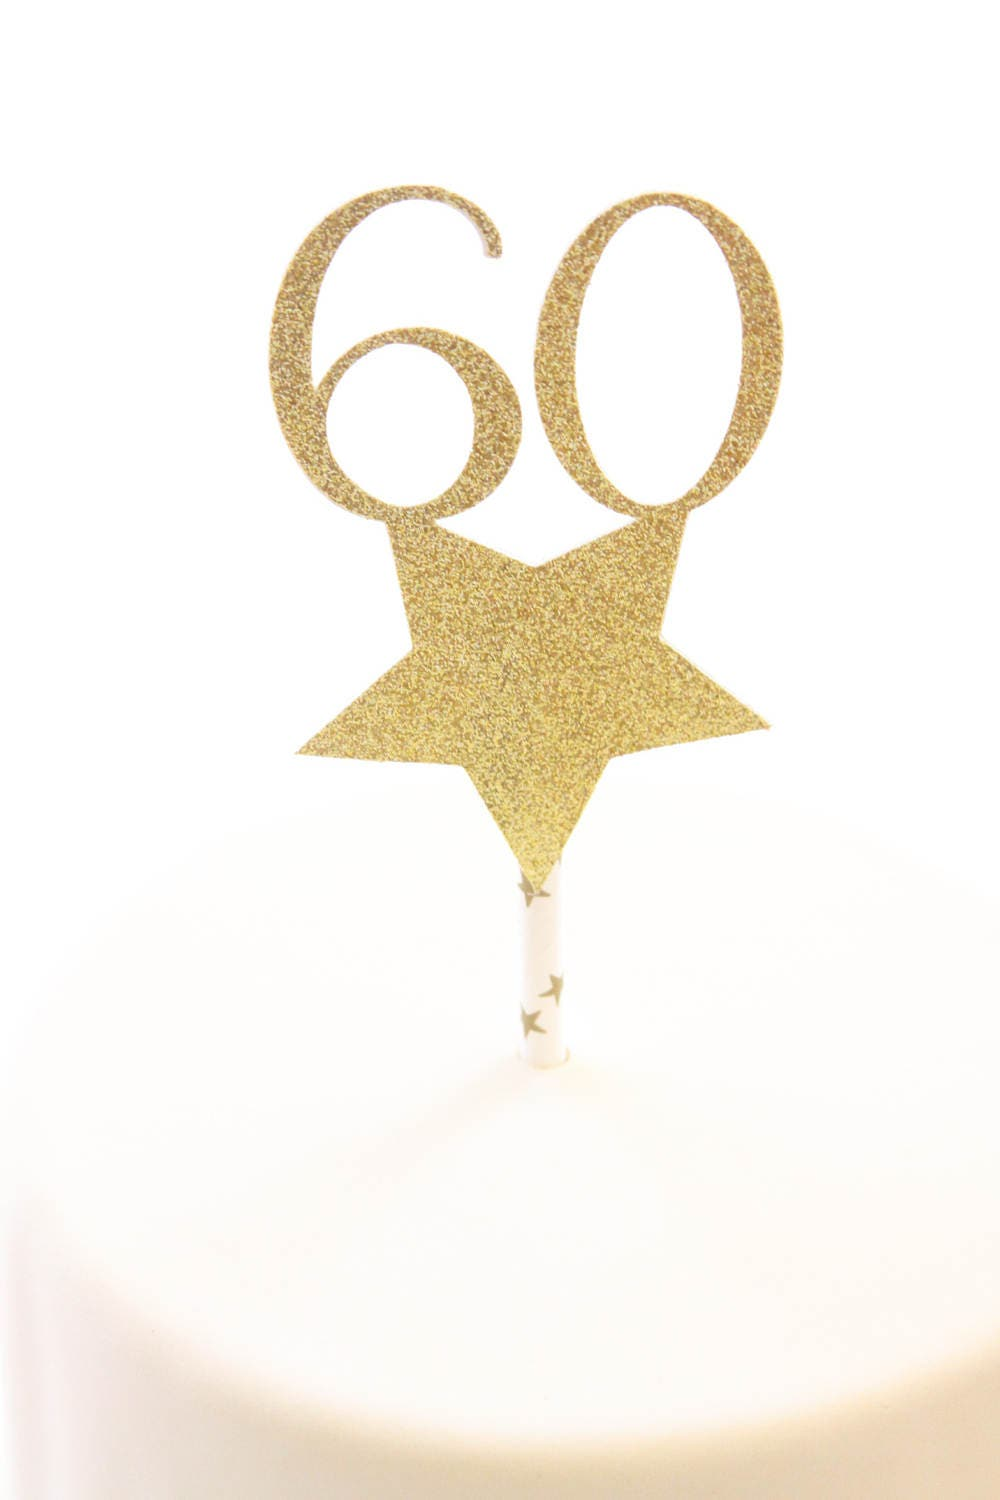 60th Birthday Cake Topper Turning 60 Anniversary Party Decorations Decor Gold Glitter Born In 1957